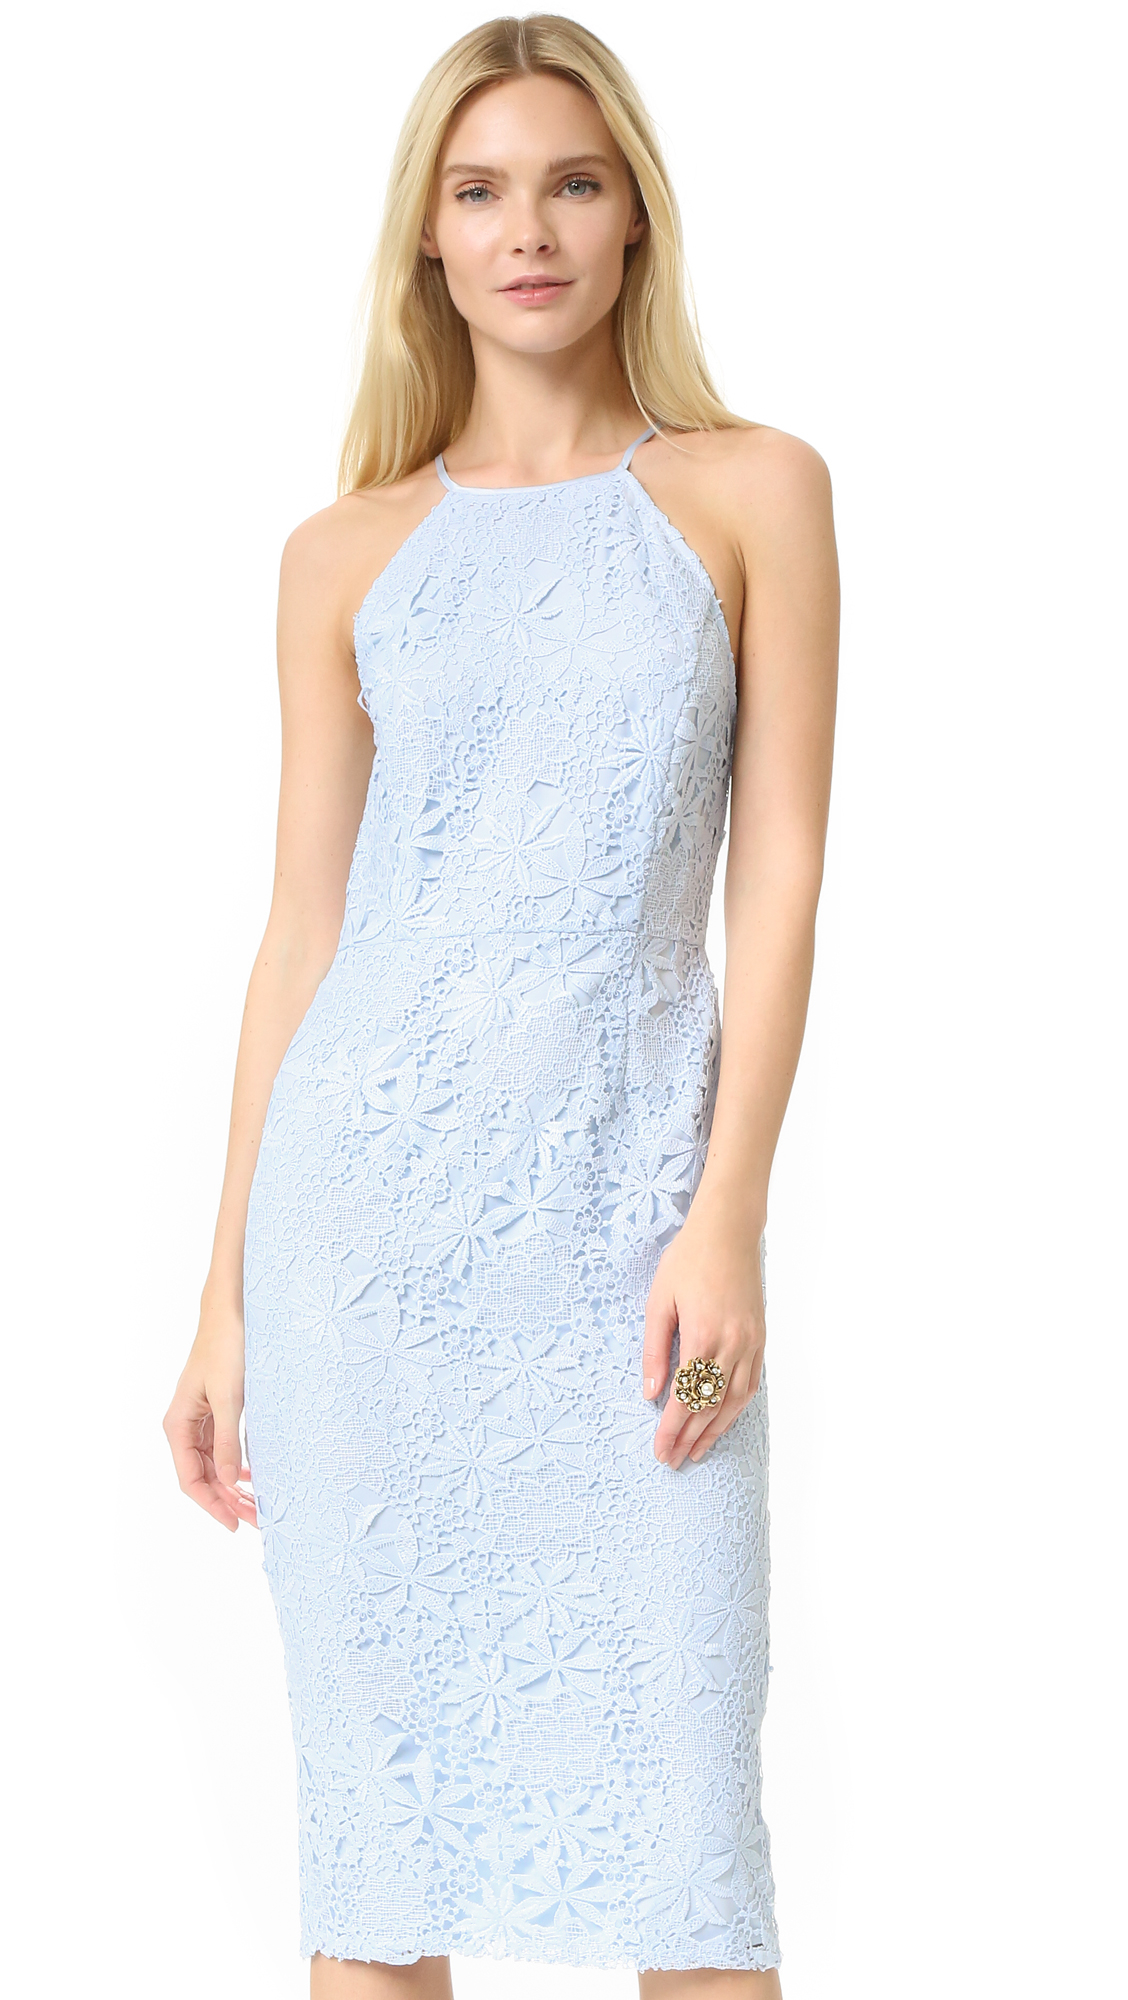 Yumi kim Save The Date Lace Dress in Blue   Lyst